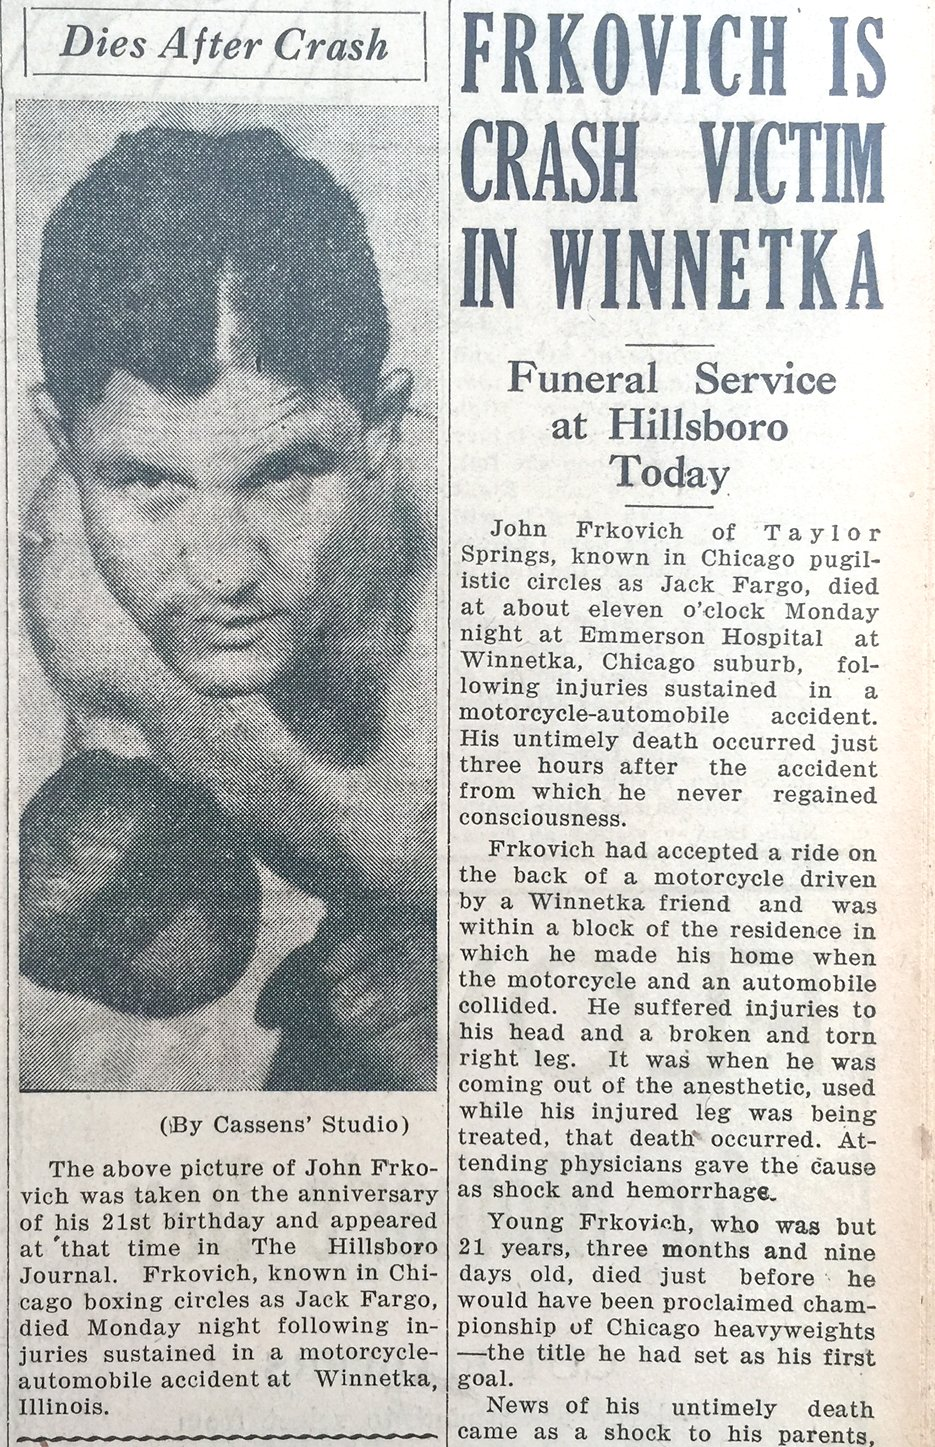 The death of 21-year-old John Frkovich, known as Jack Fargo in Chicago boxing circles, was front page news for The Hillsboro Journal on May 5, 1938. Frkovich's death came just 11 days before what would have been the biggest match of his career against Max Marek, the Illinois State Heavyweight champion at the time.